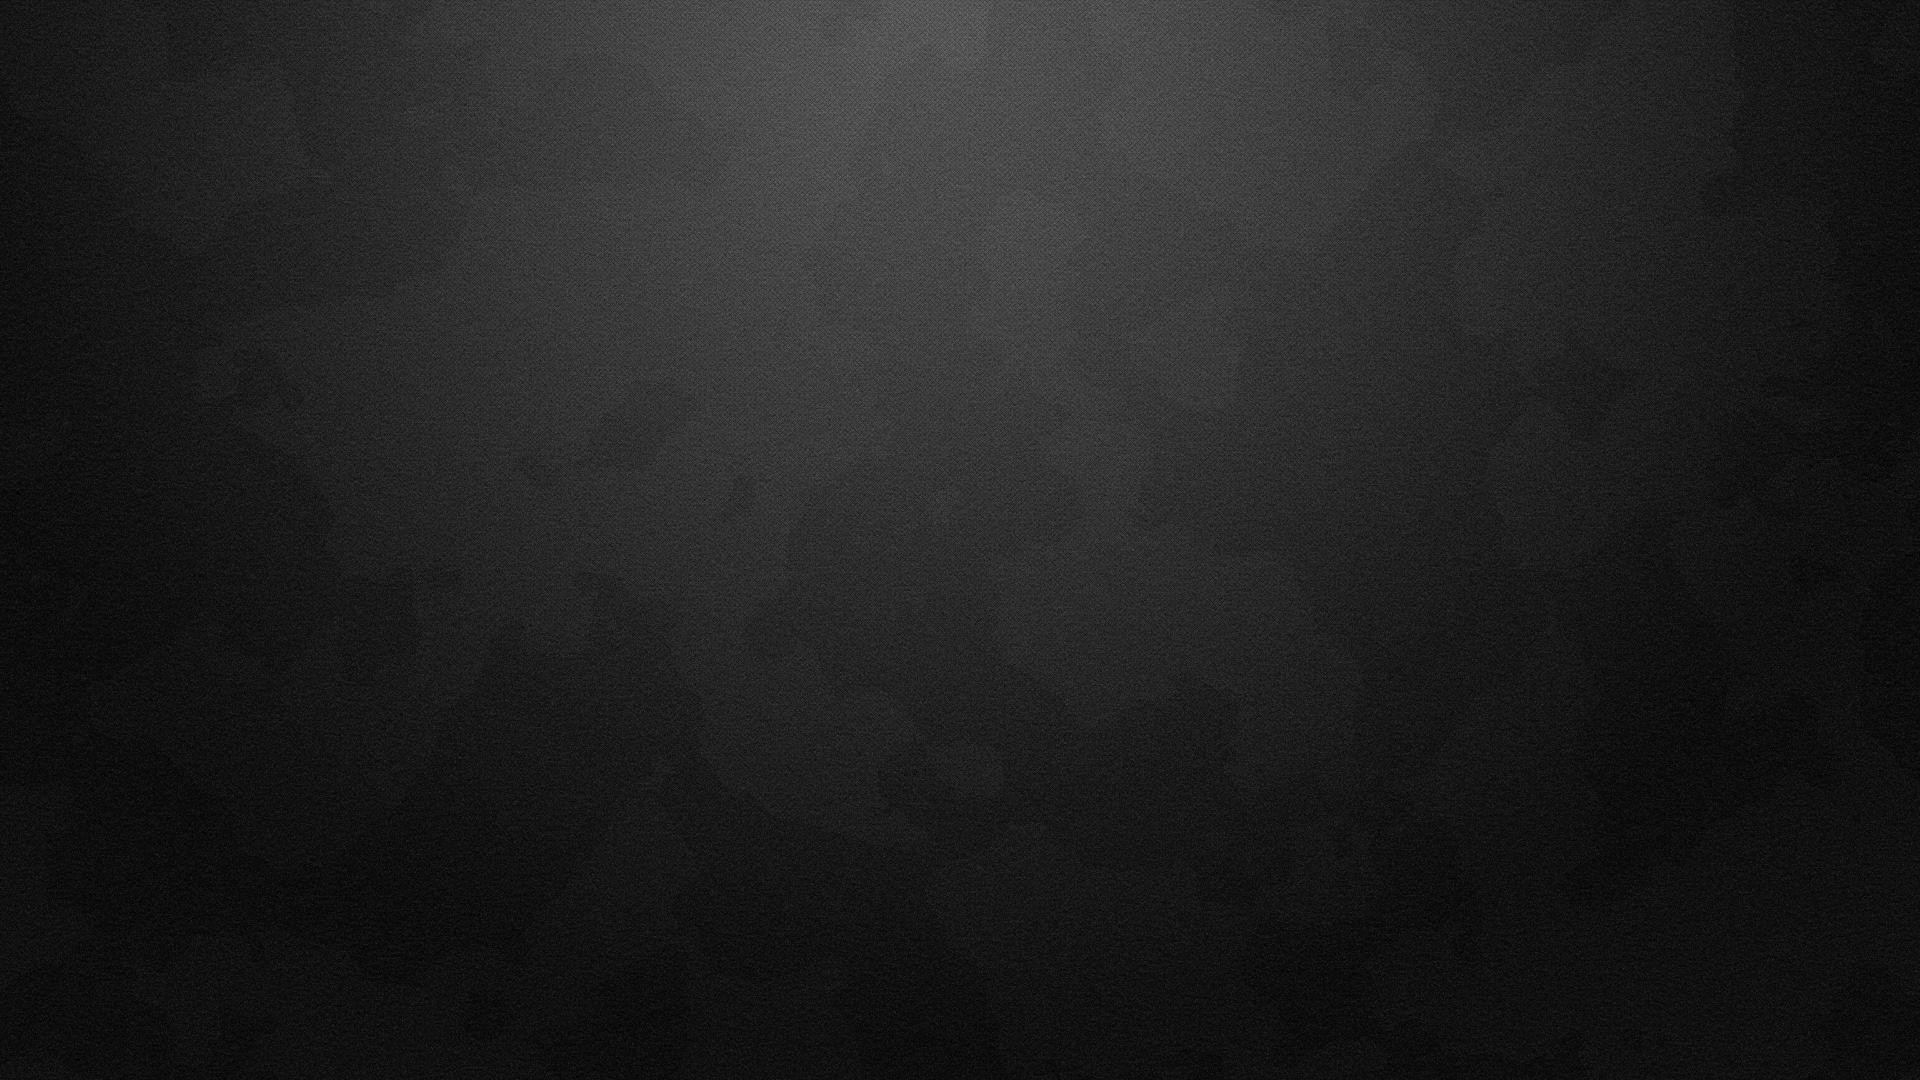 Clean Background Download Free Cool High Resolution